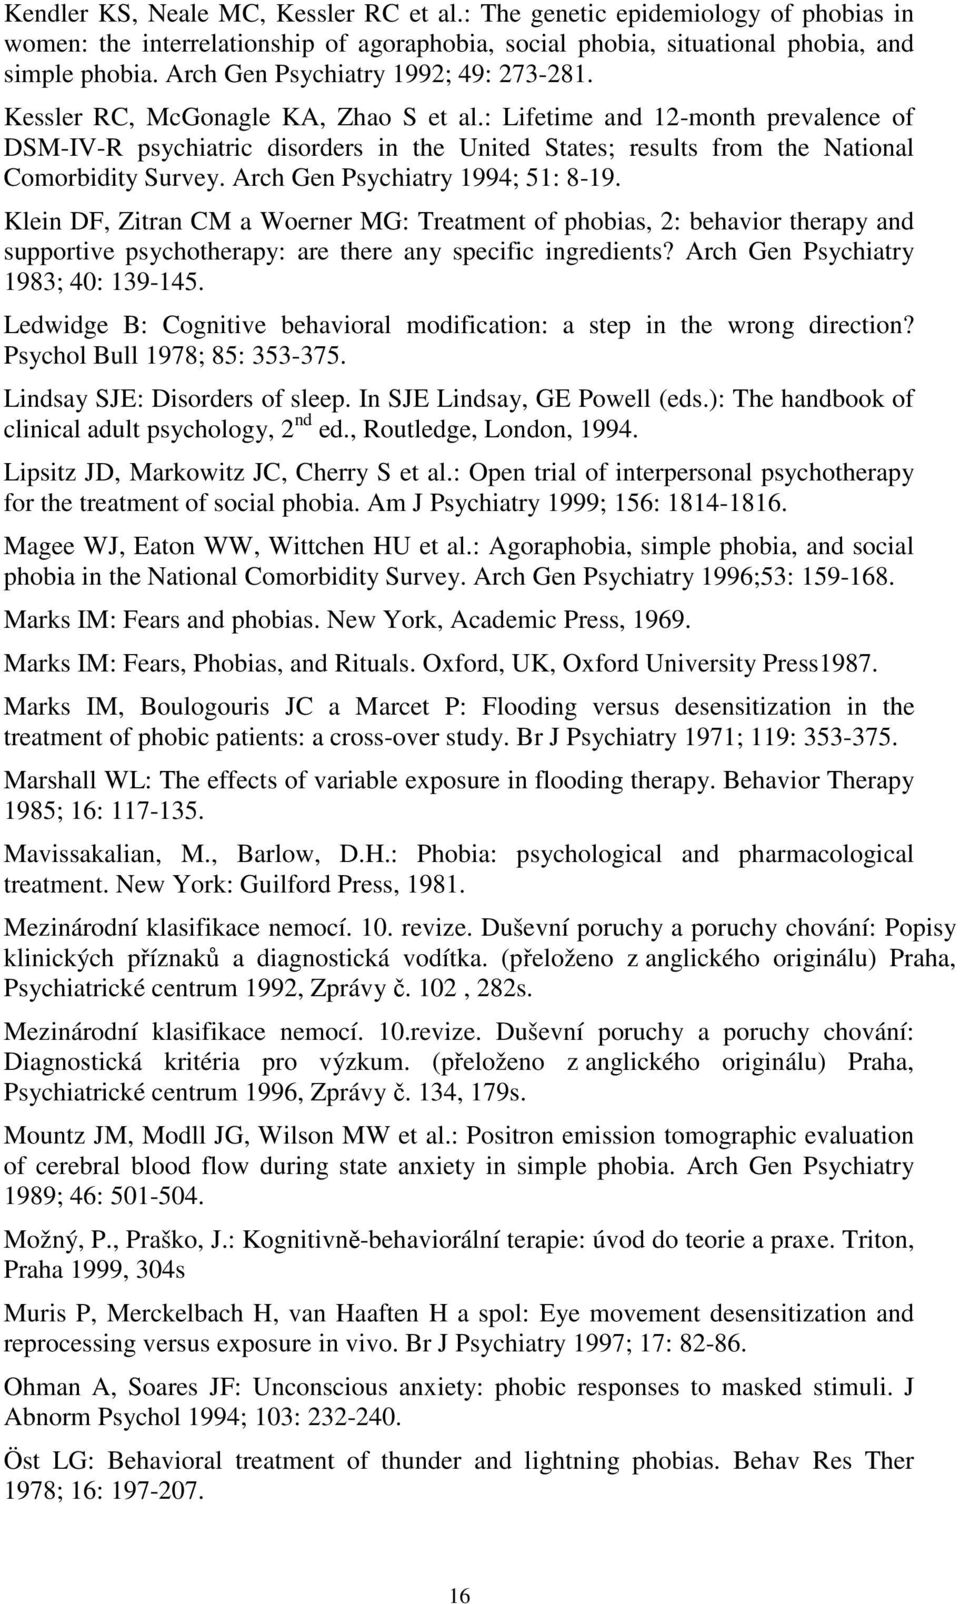 : Lifetime and 12-month prevalence of DSM-IV-R psychiatric disorders in the United States; results from the National Comorbidity Survey. Arch Gen Psychiatry 1994; 51: 8-19.